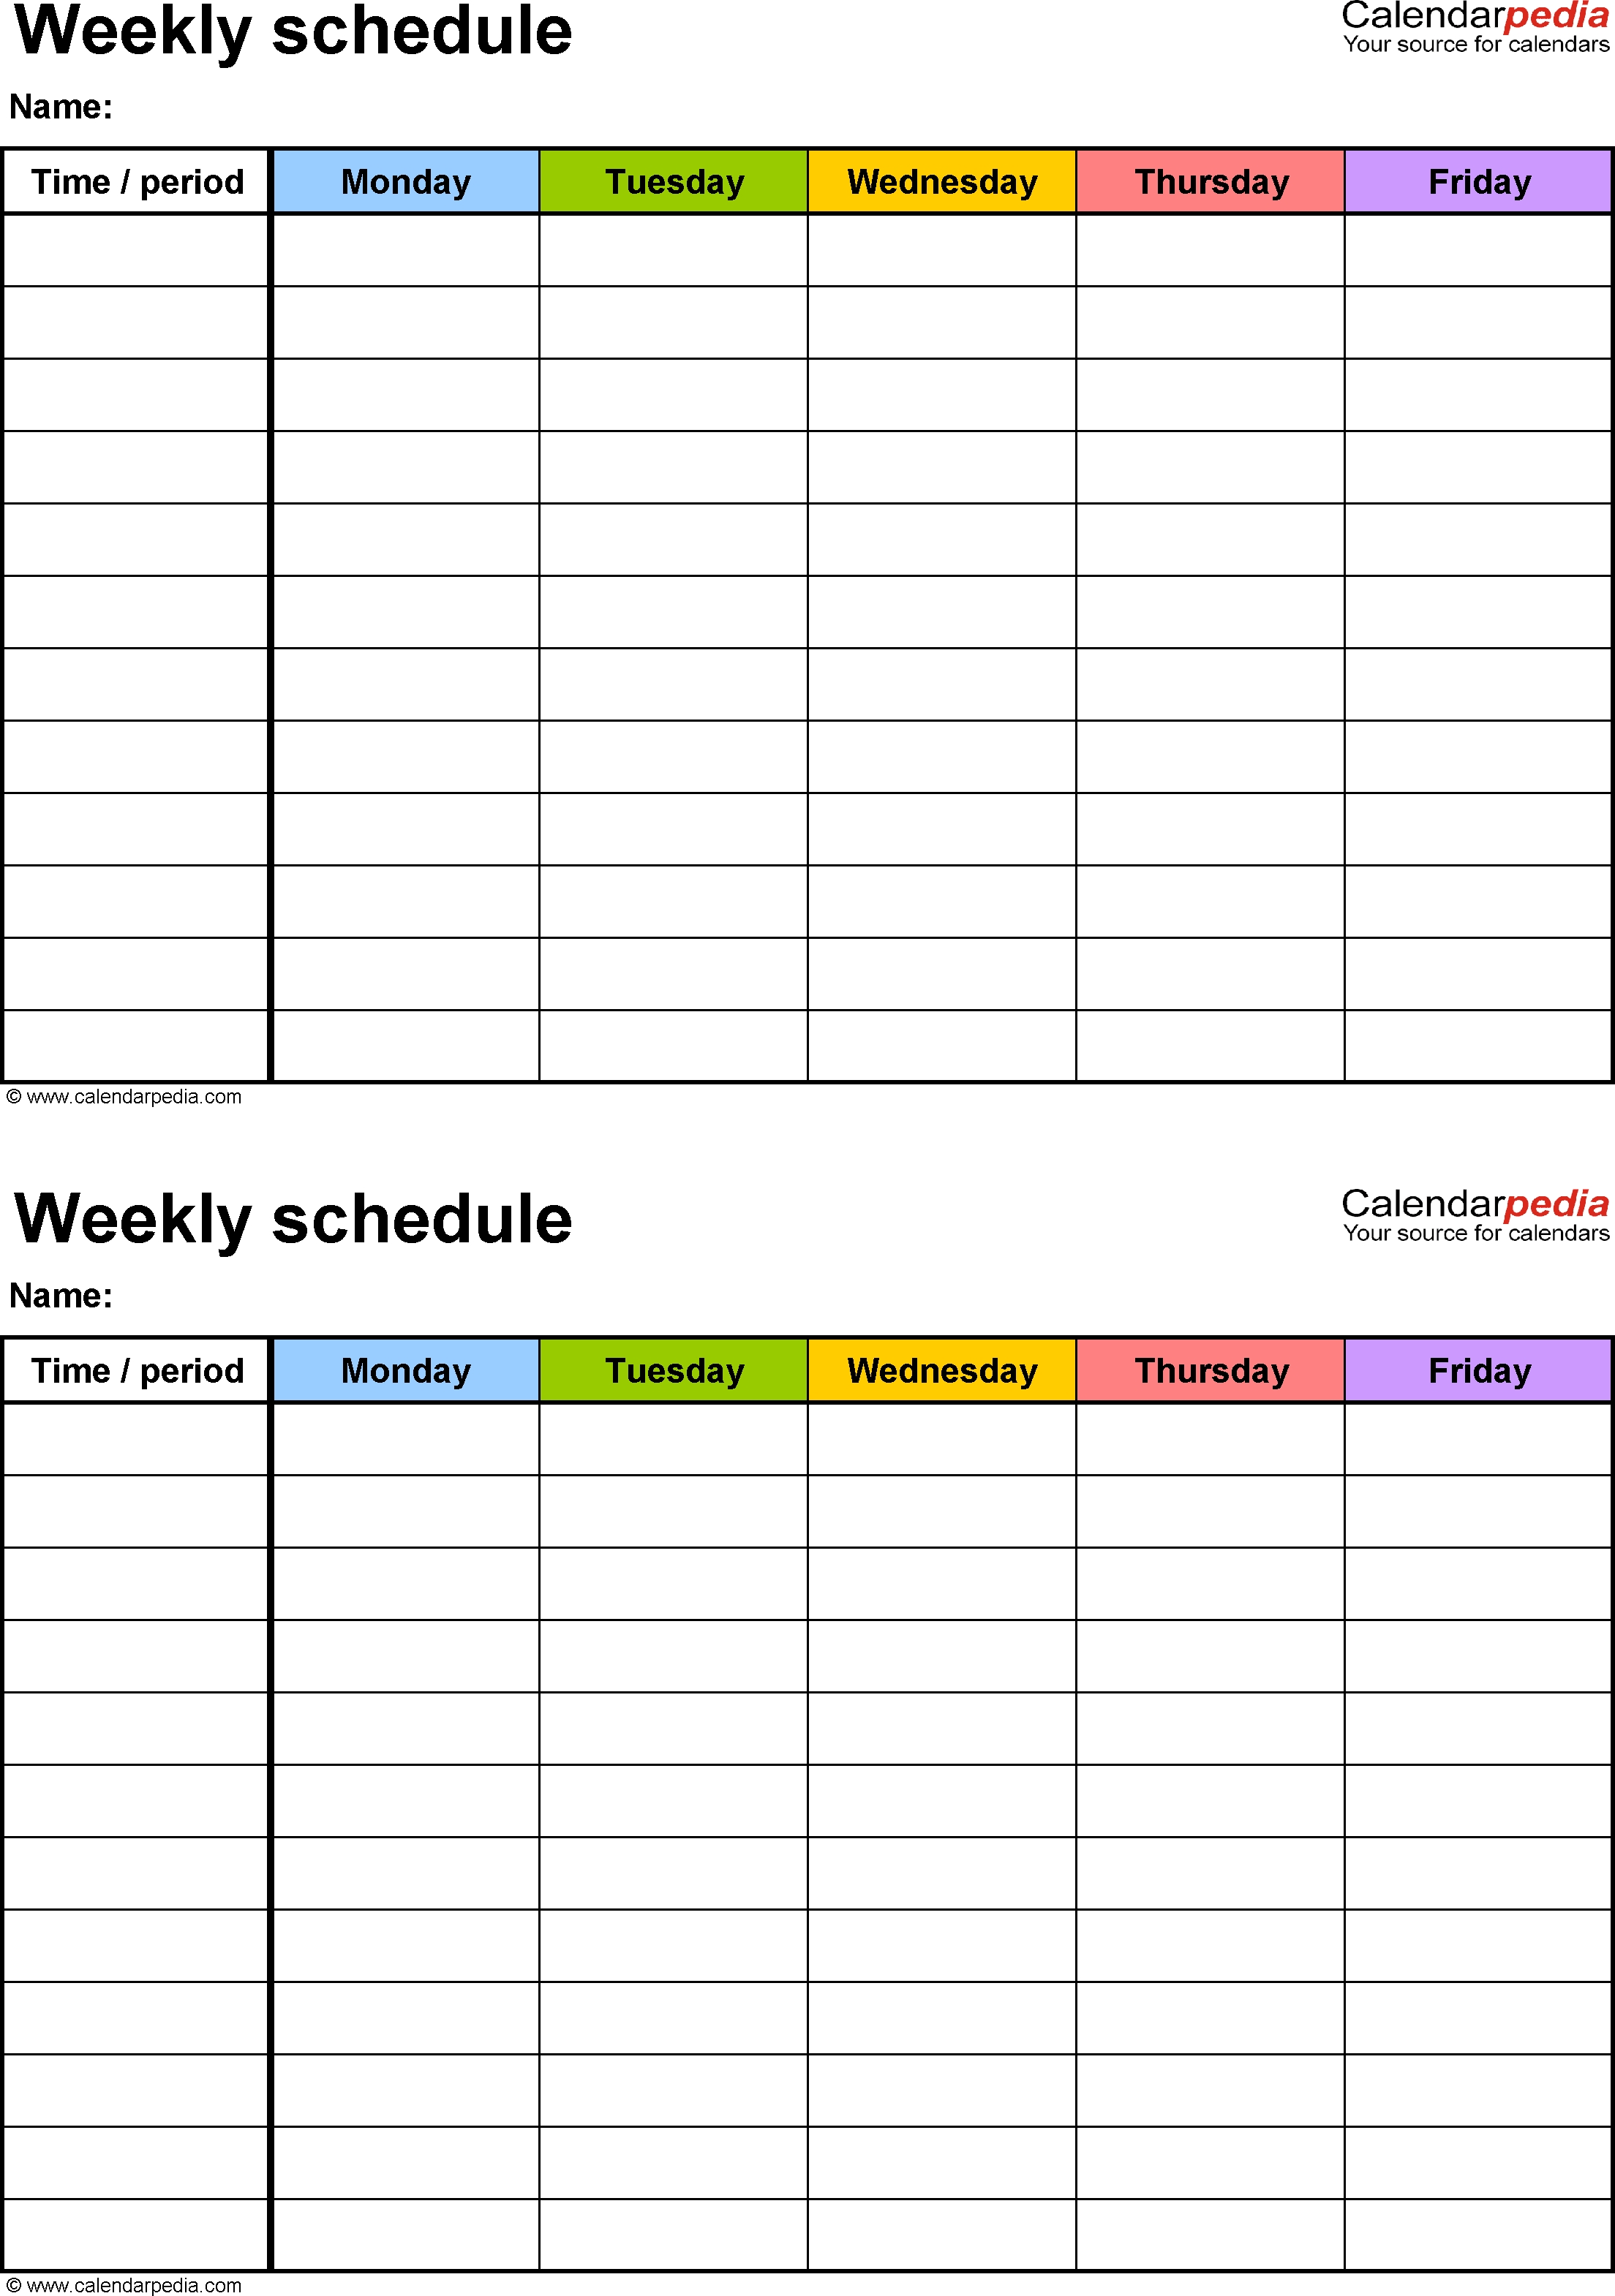 Free Weekly Schedule Templates For Excel - 18 Templates-Week Planner Template Met Week Nummers